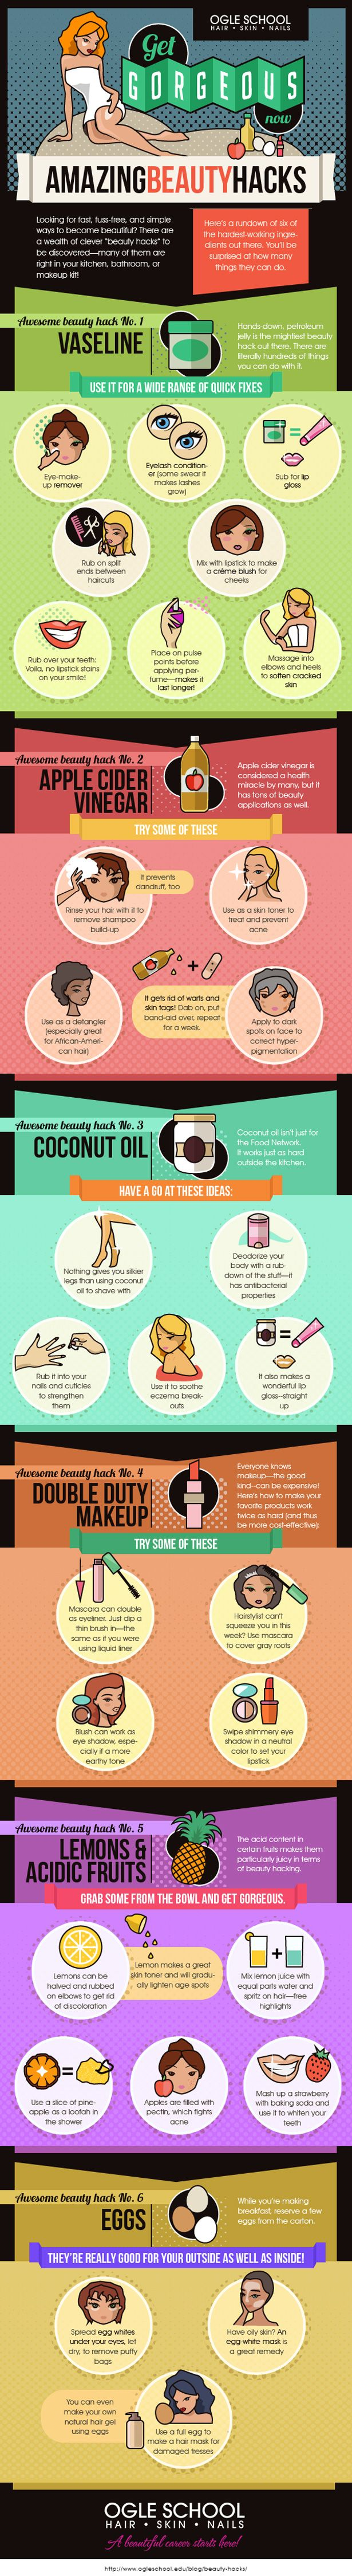 Infographic of the most versatile and quick beauty hacks - Beauty - Stylist Magazine